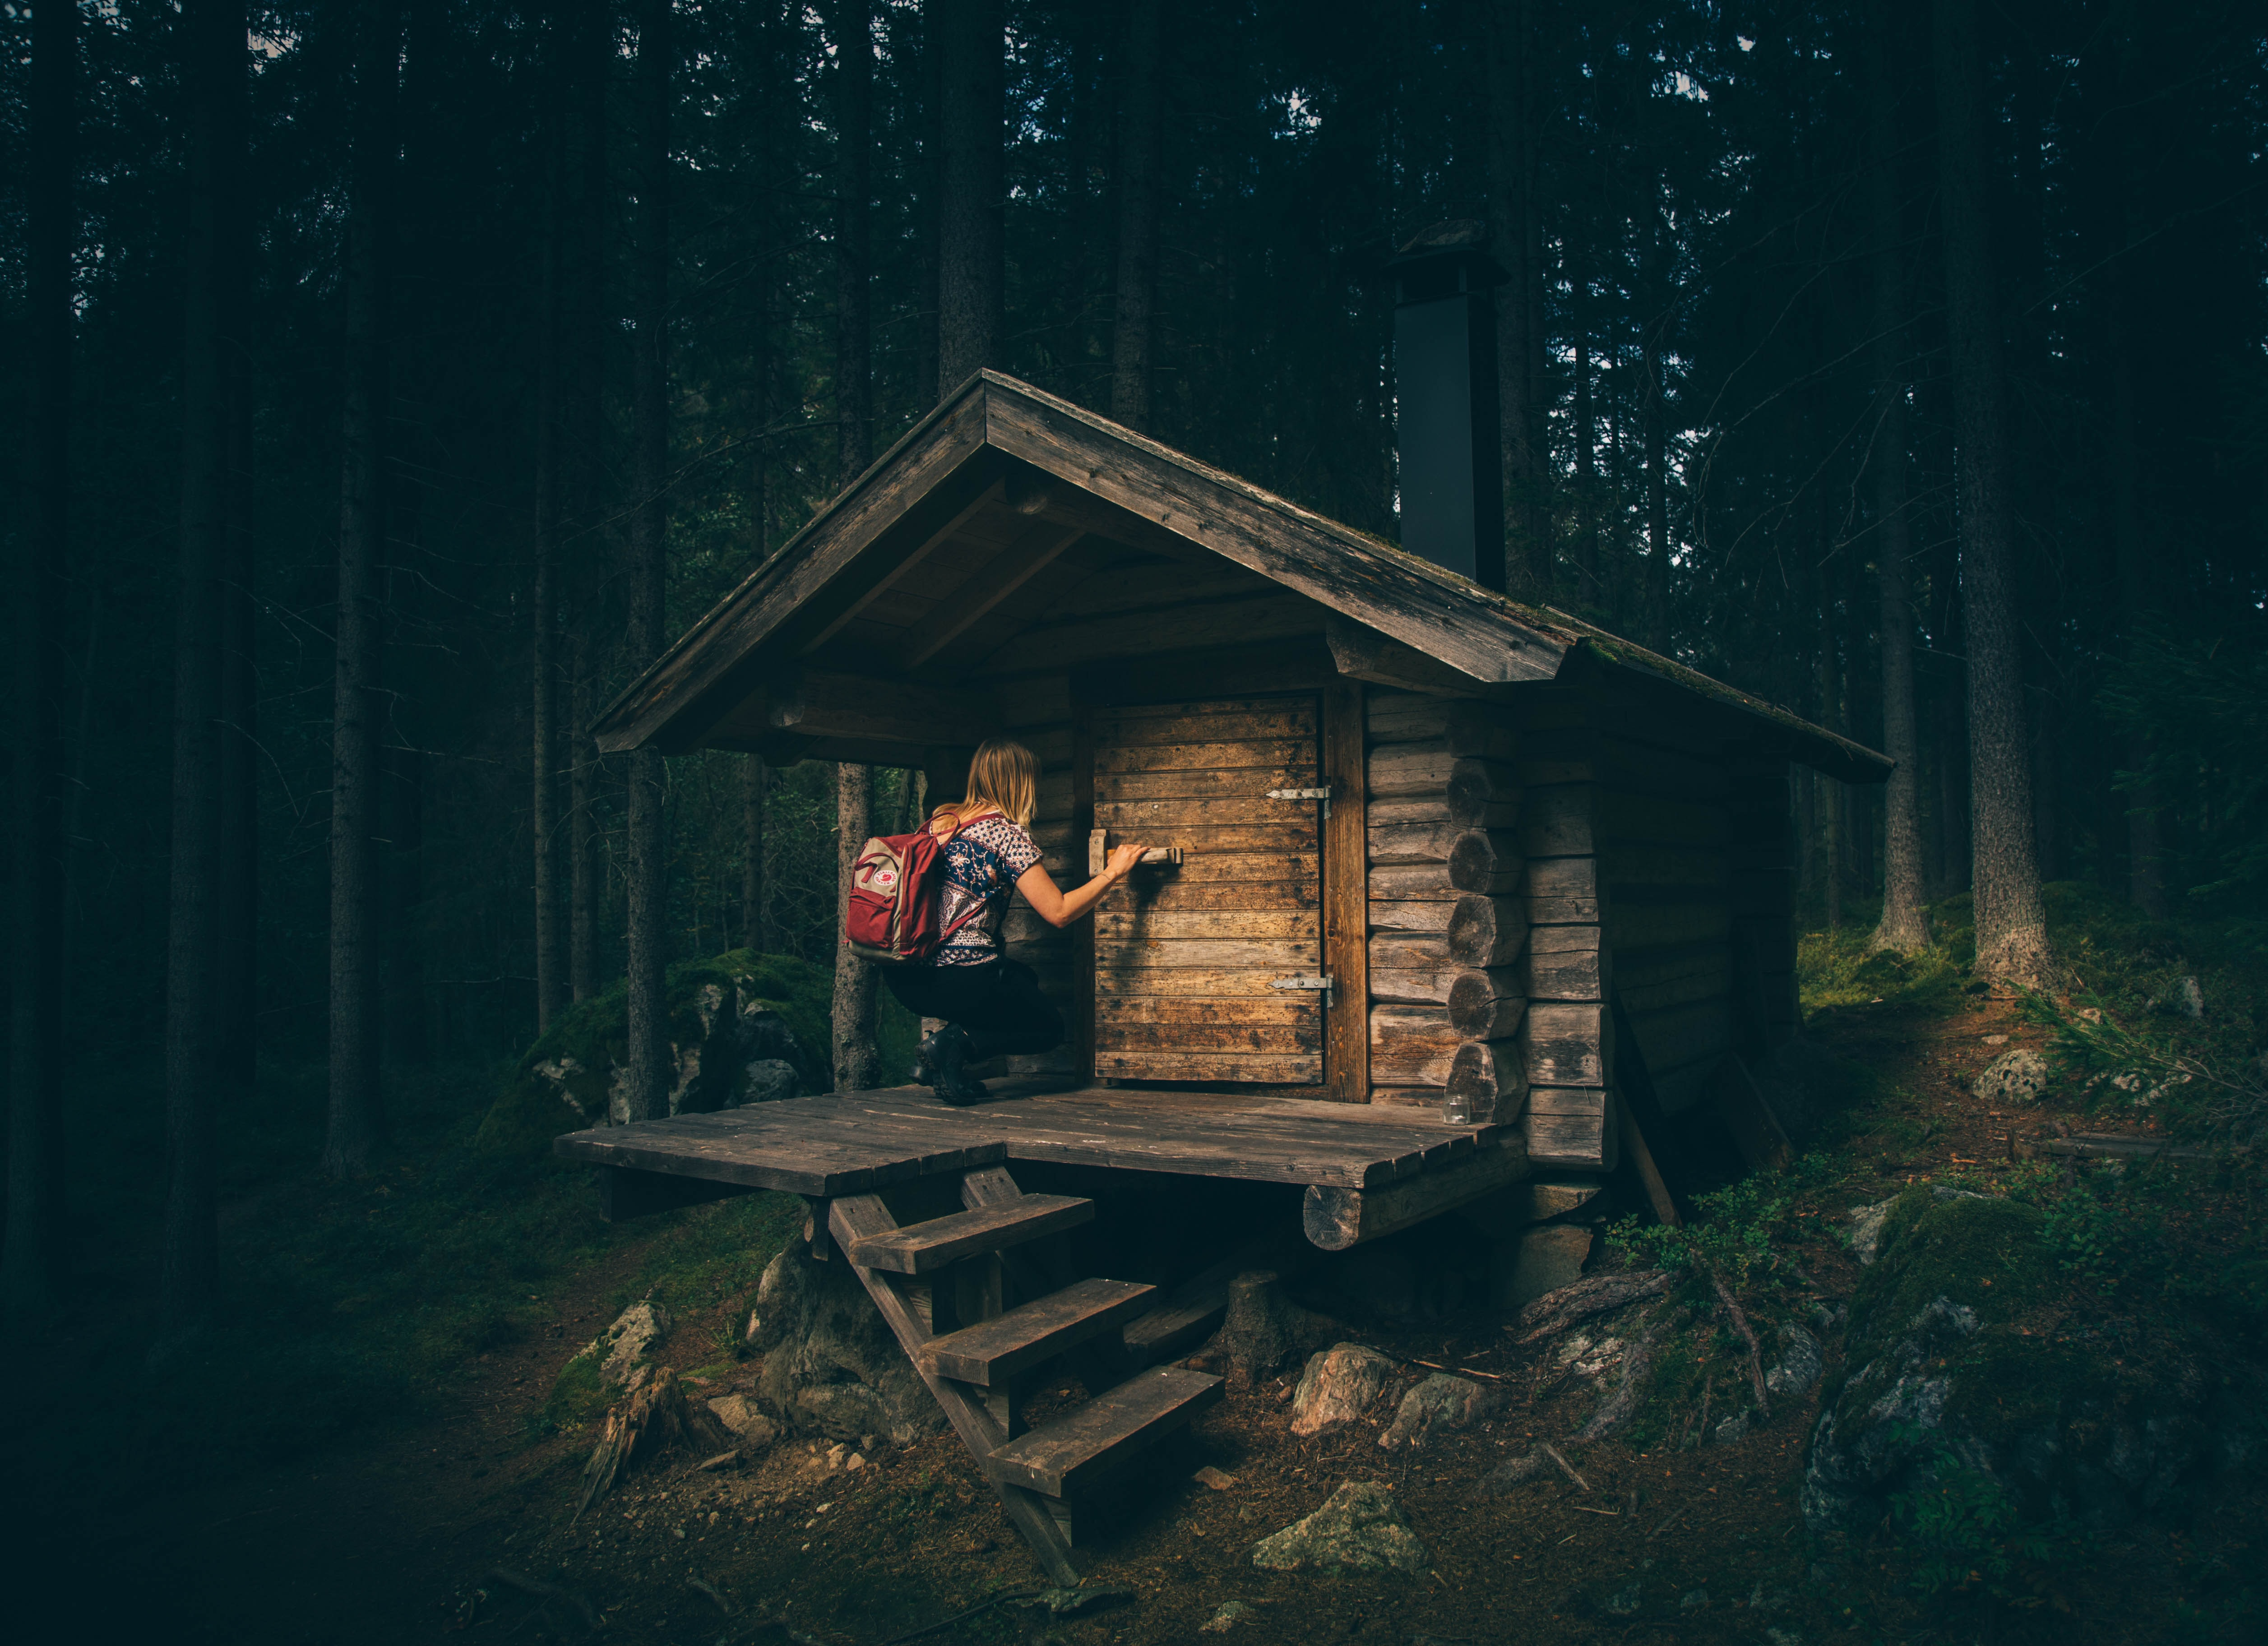 A hiker kneeling on the porch of a small wood cabin in the woods